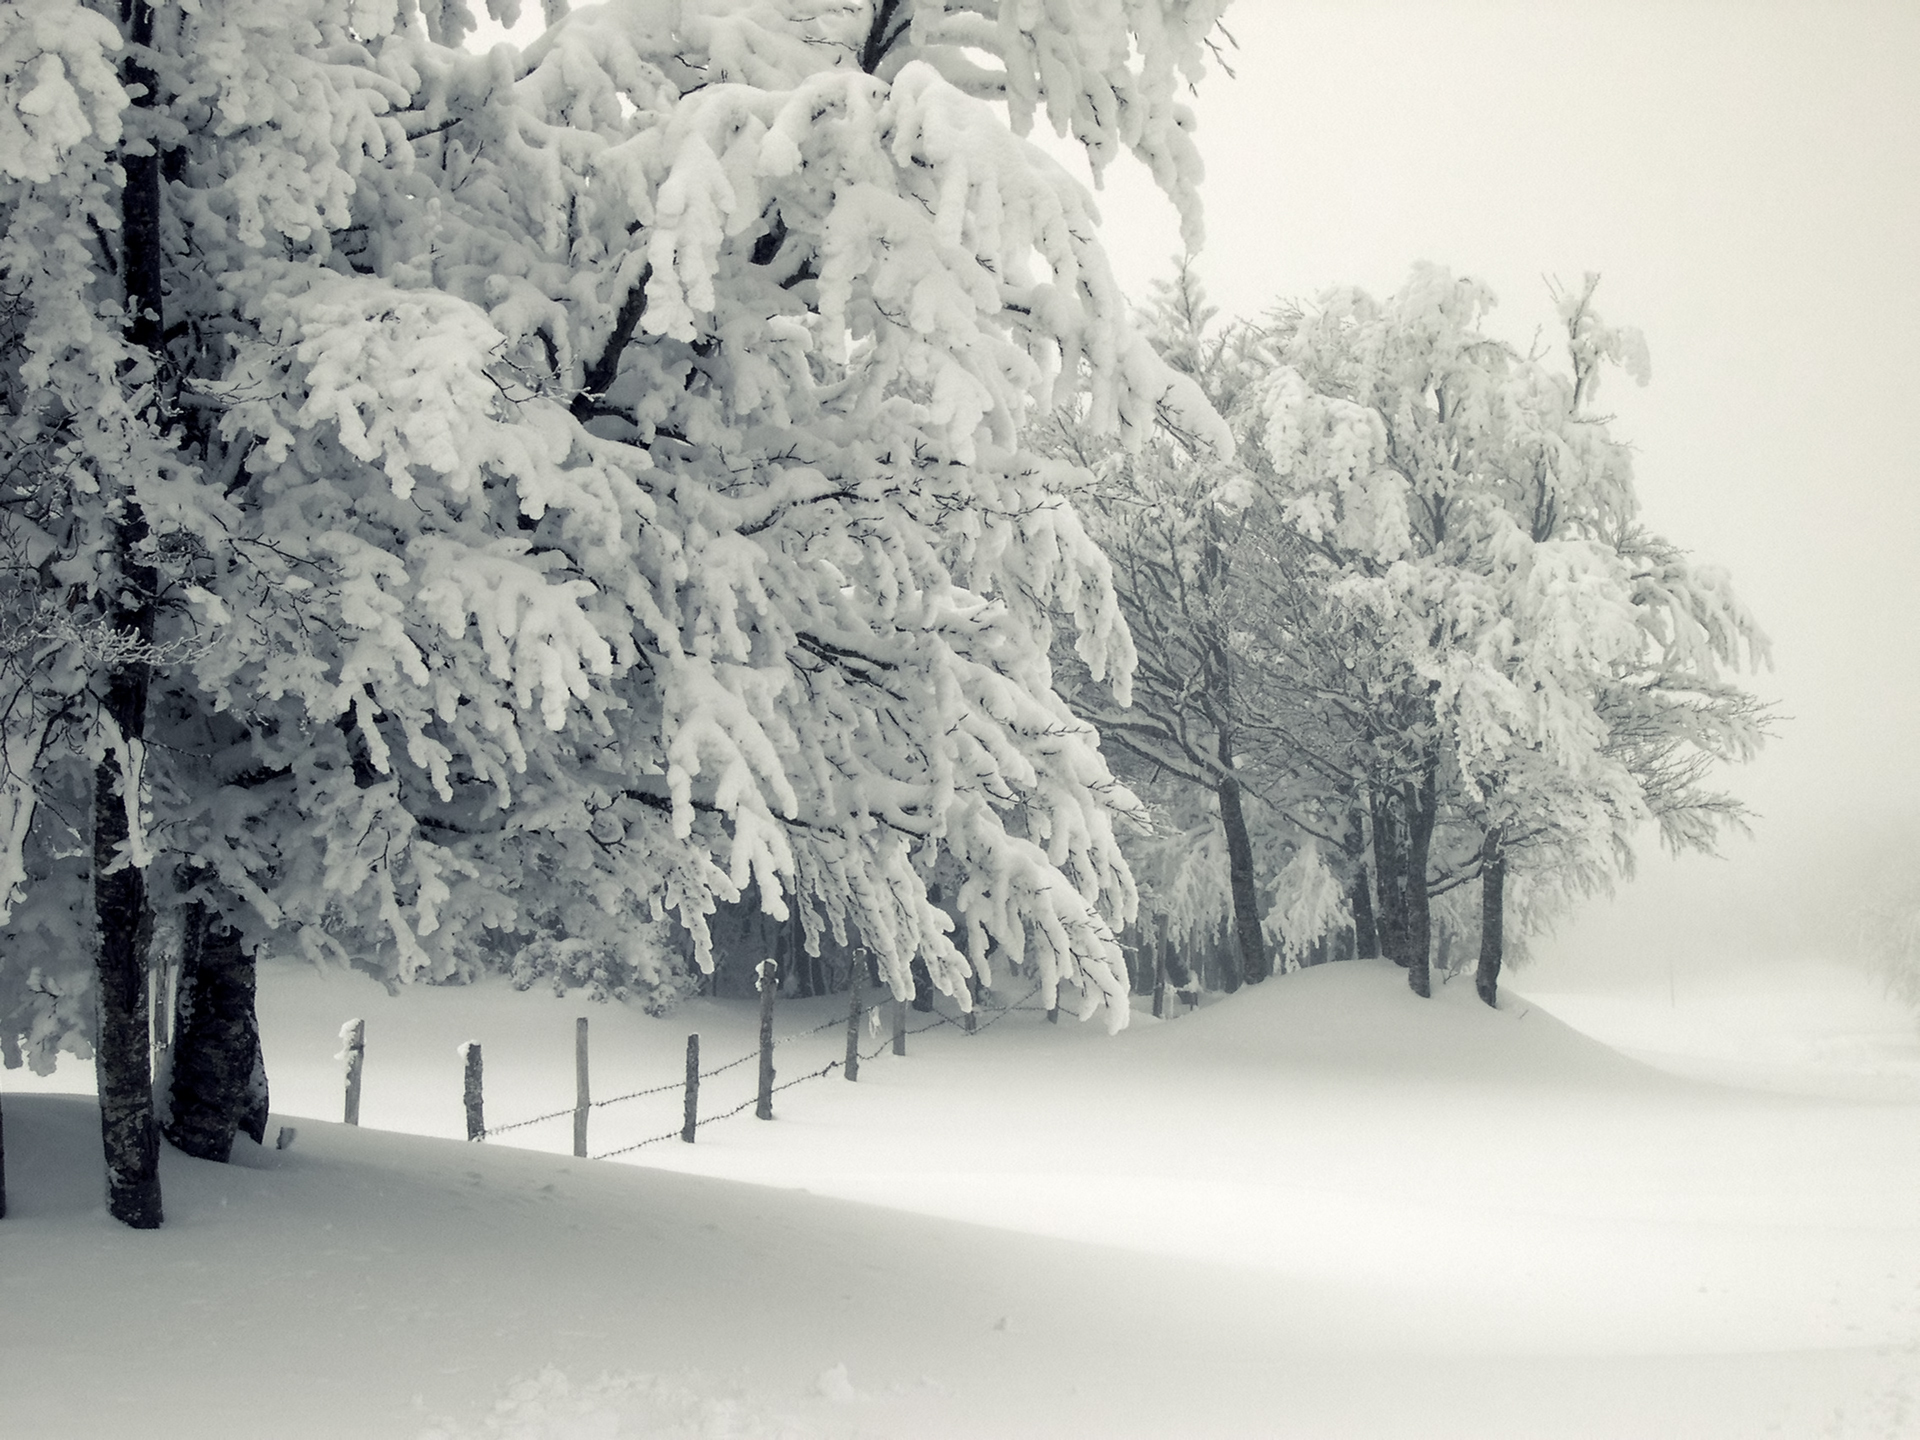 Seasons Winter Snow Trees Branches Nature Wallpapers and photos